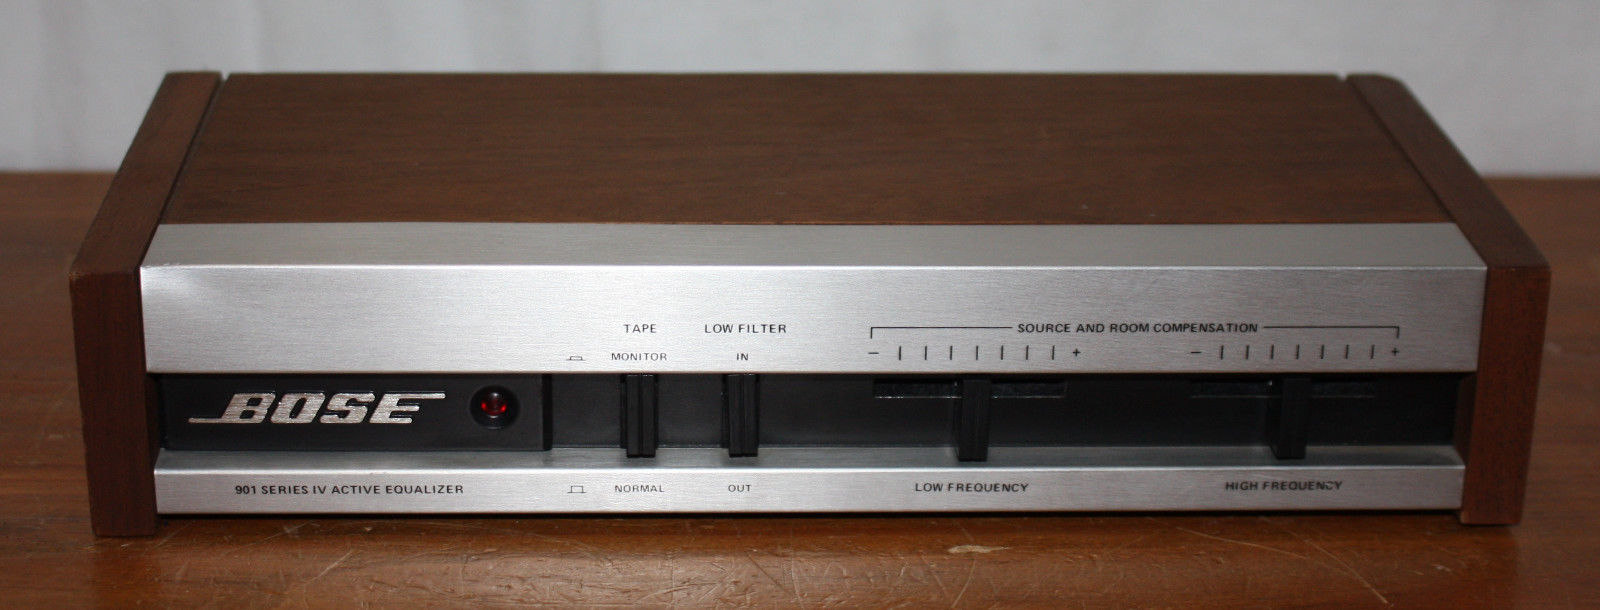 Bose 901 Series III / IV Active Equalizer